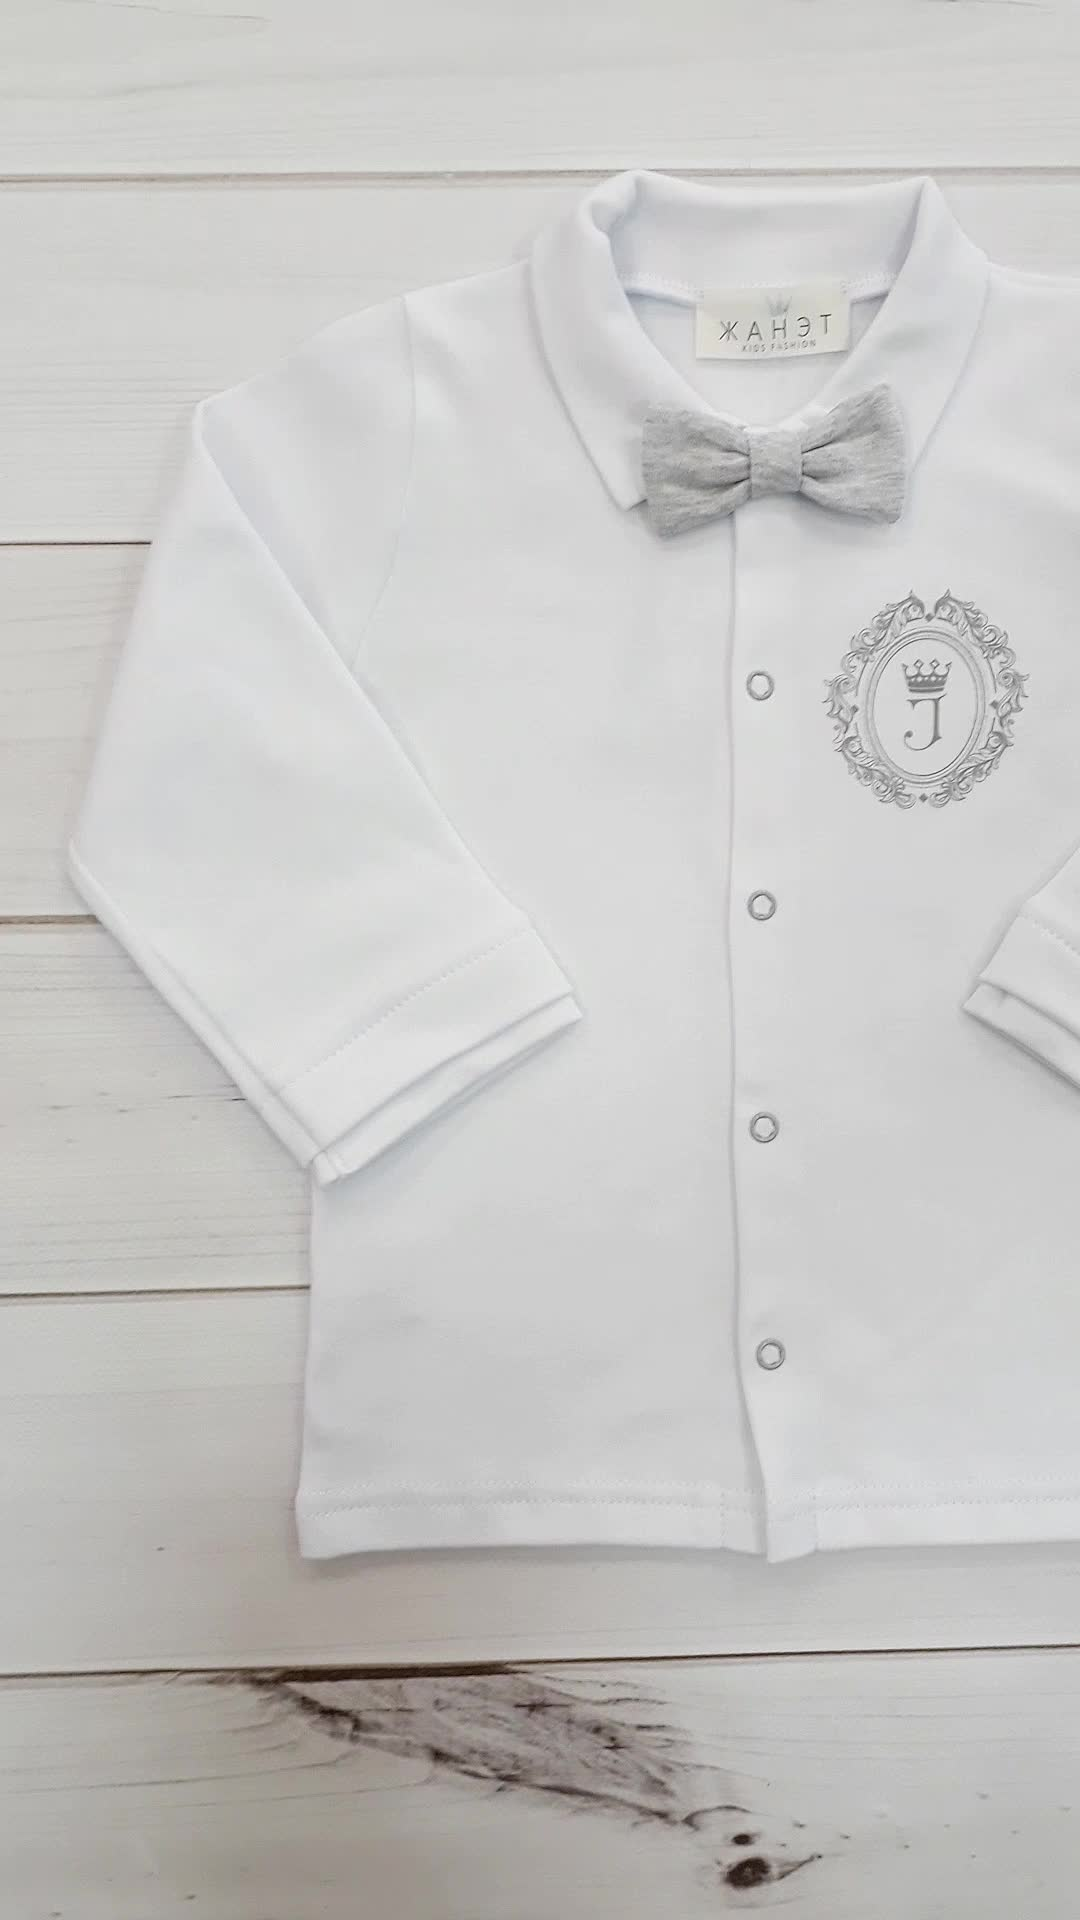 926 Ceremony shirt with grey logo cotton material white boys shirt